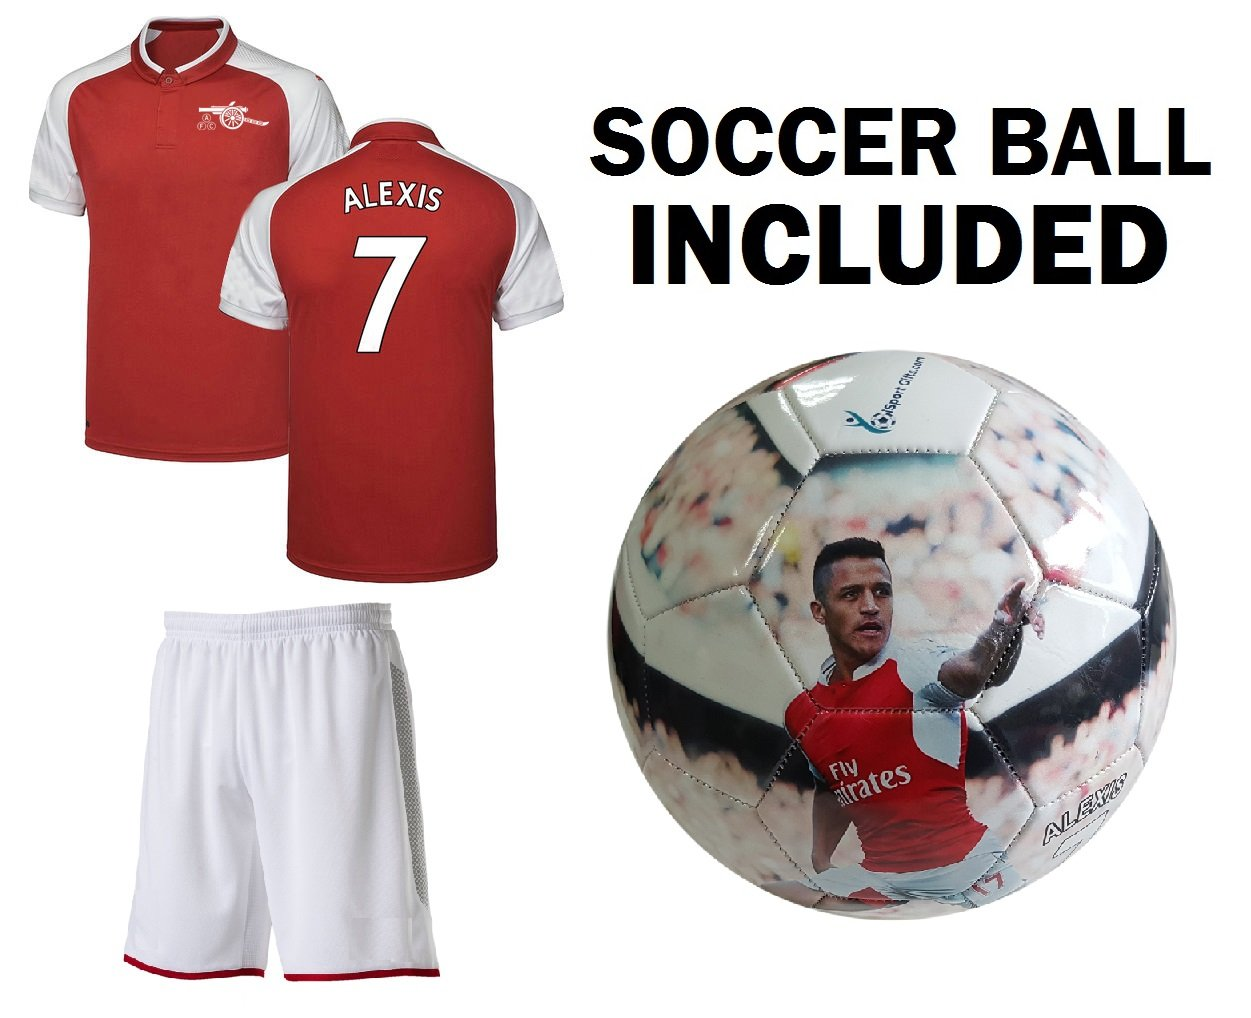 Kit bag ALEXIS #7 Jersey + Soccer Ball Youth sizes - Red Kids Soccer Jersey + Shorts + Alexis Sánchez A #7 Size 5 Ball Kitbag